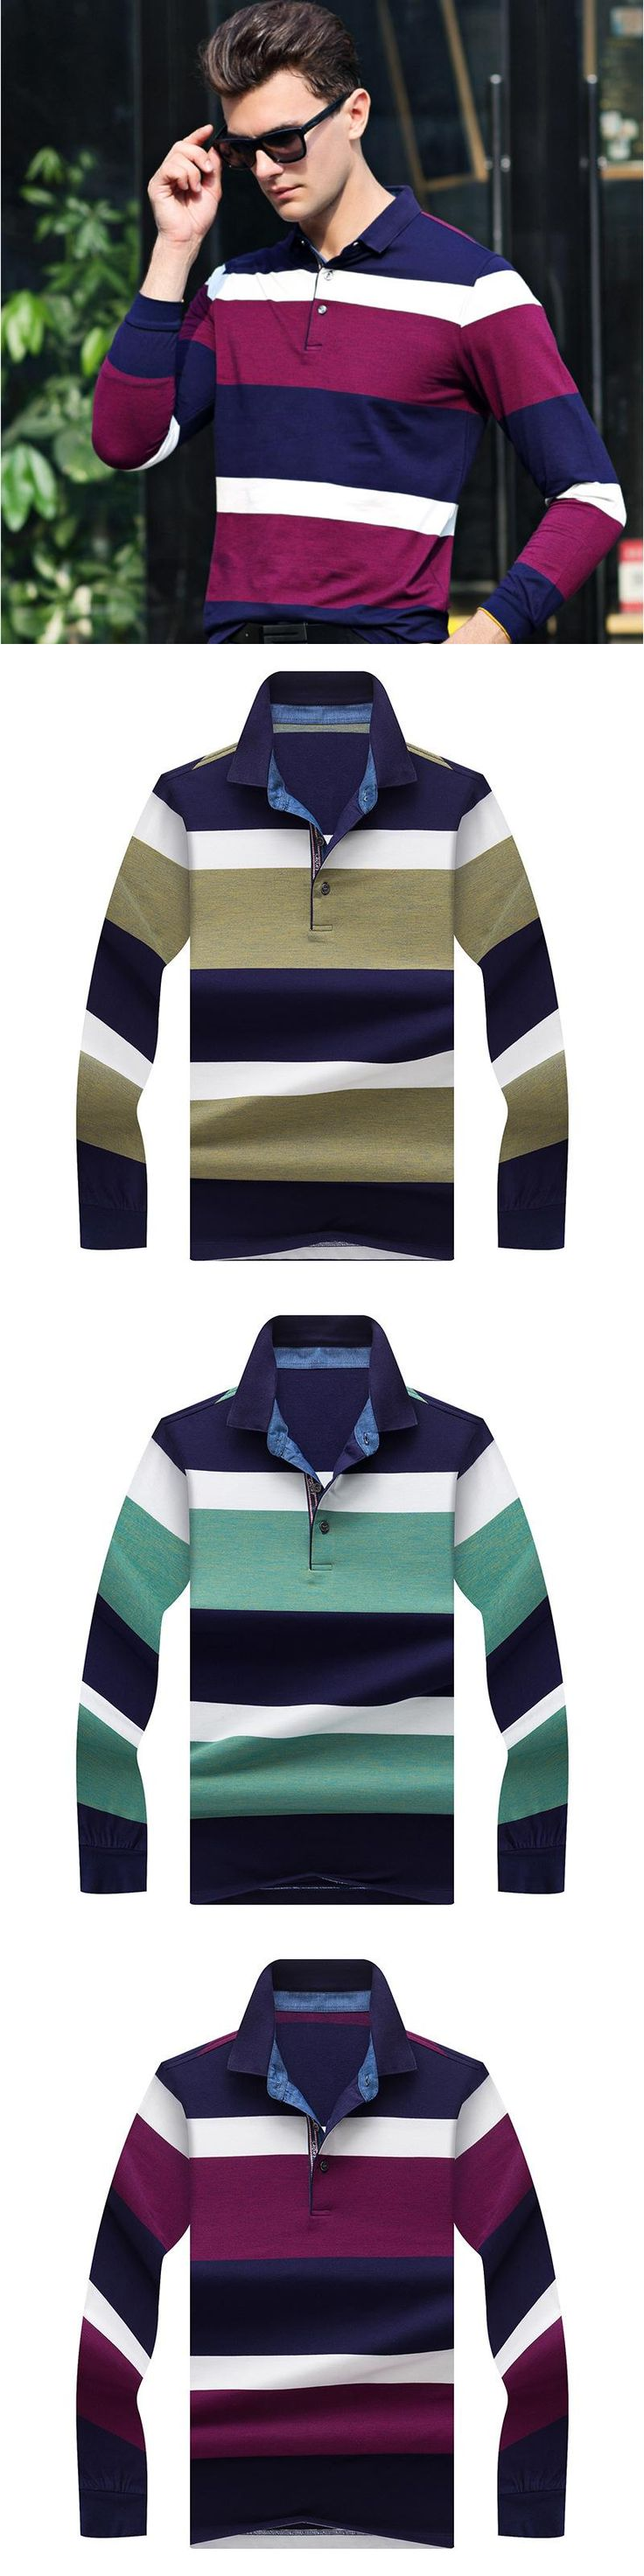 Kayphil Business Style Tops Striped Patterns Lapel Casual Cotton Long Sleeve POLO Shirt for Men